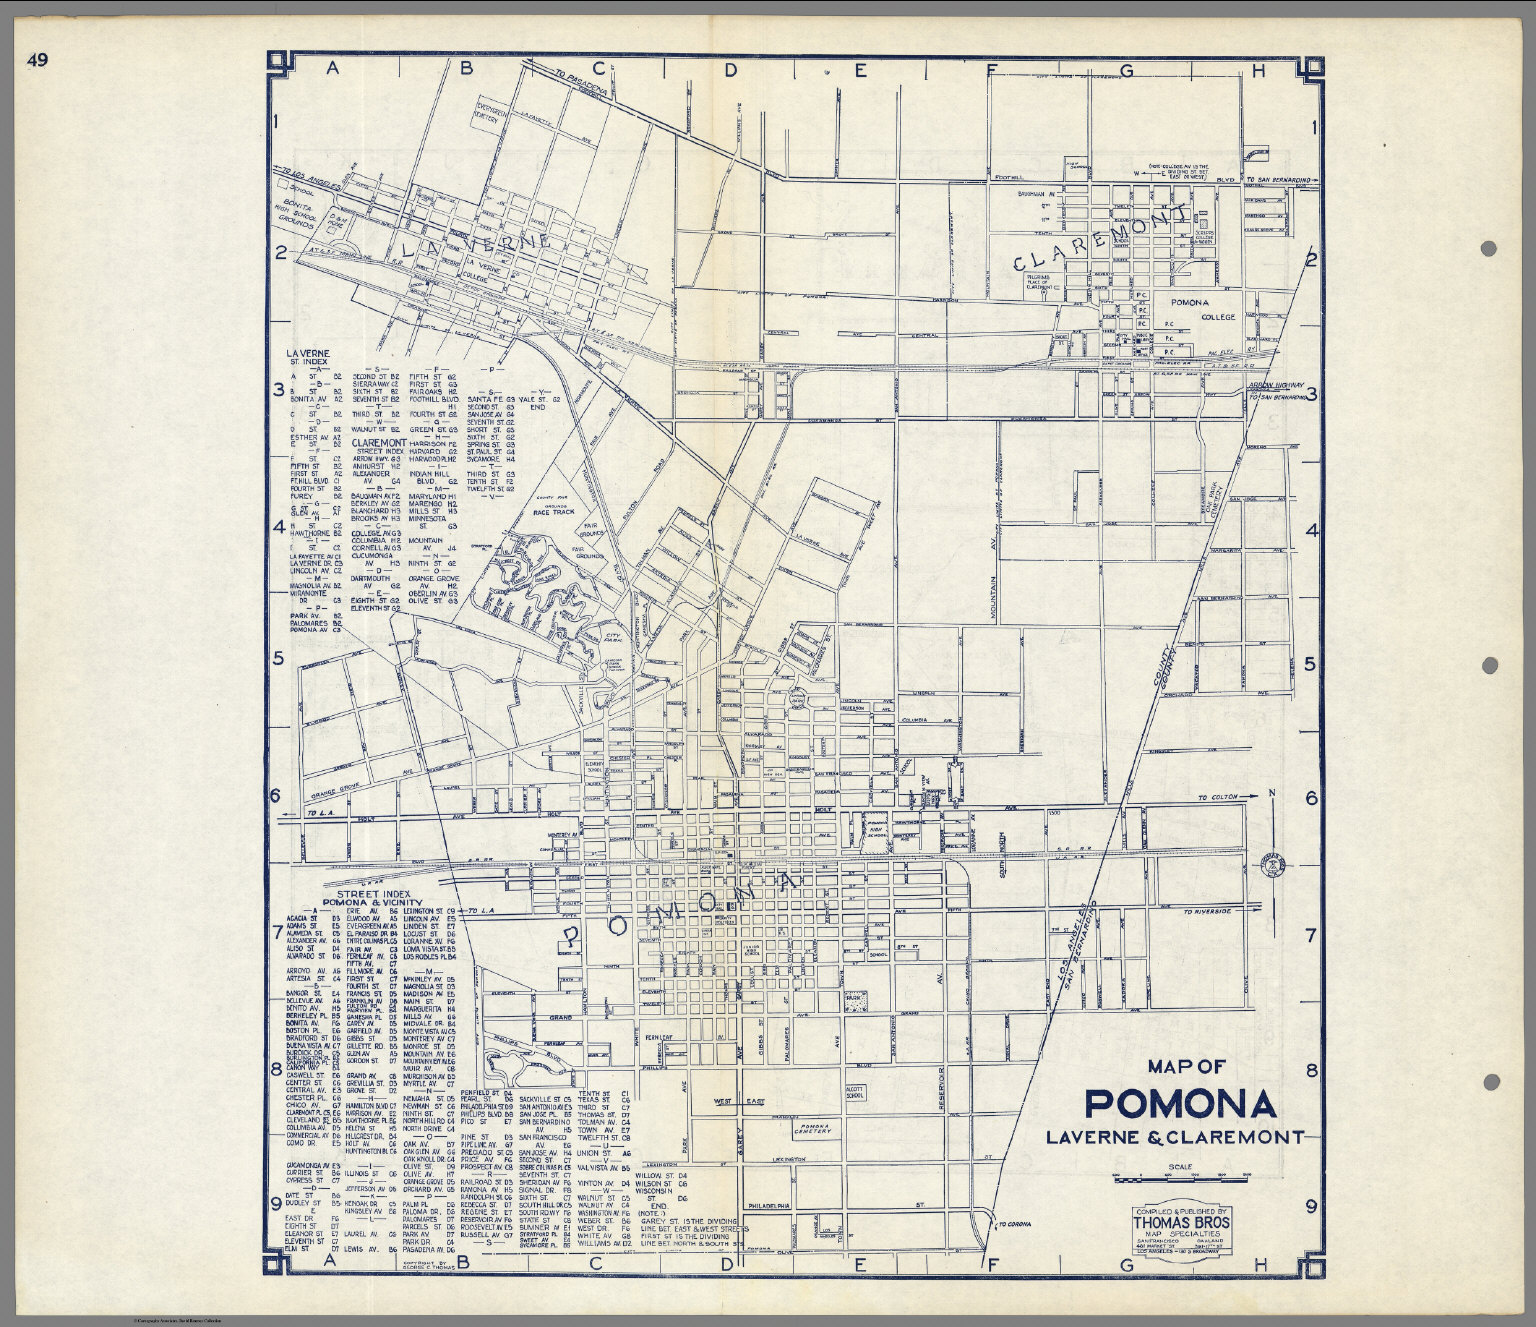 Map of Pomona, Laverne & Claremont, California.   David Rumsey